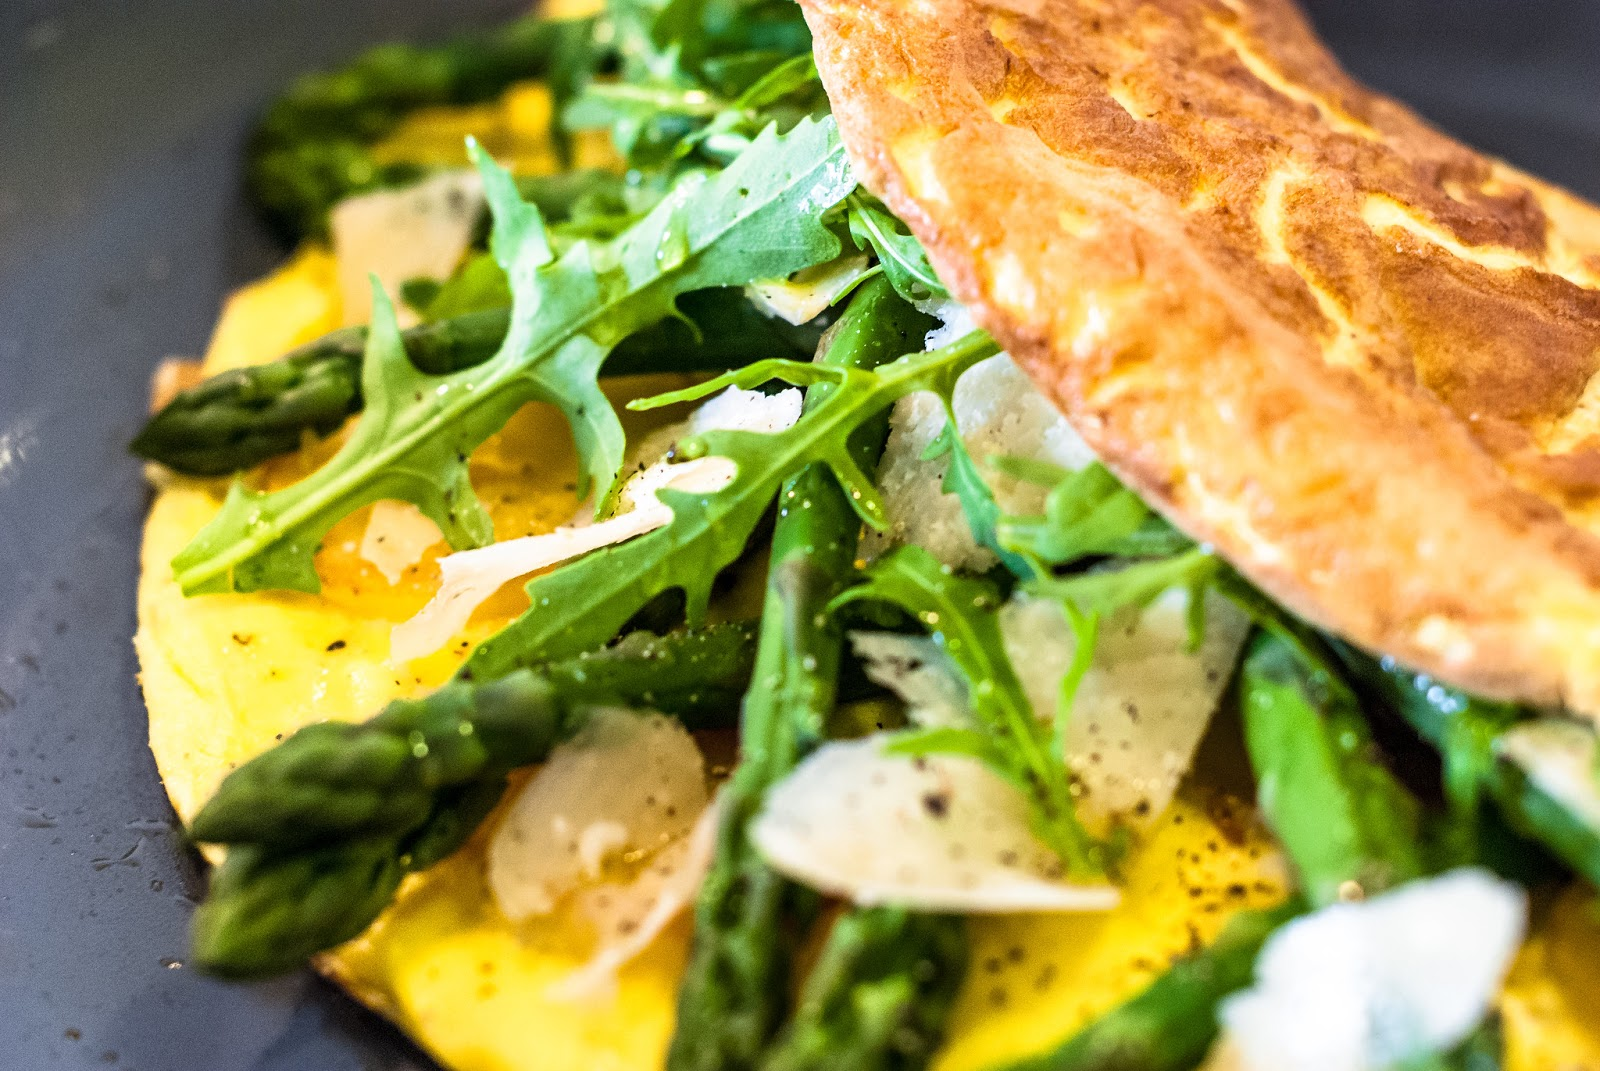 Asparagus Omelette with Sauté Chicken: Thermomix Paleo Recipe